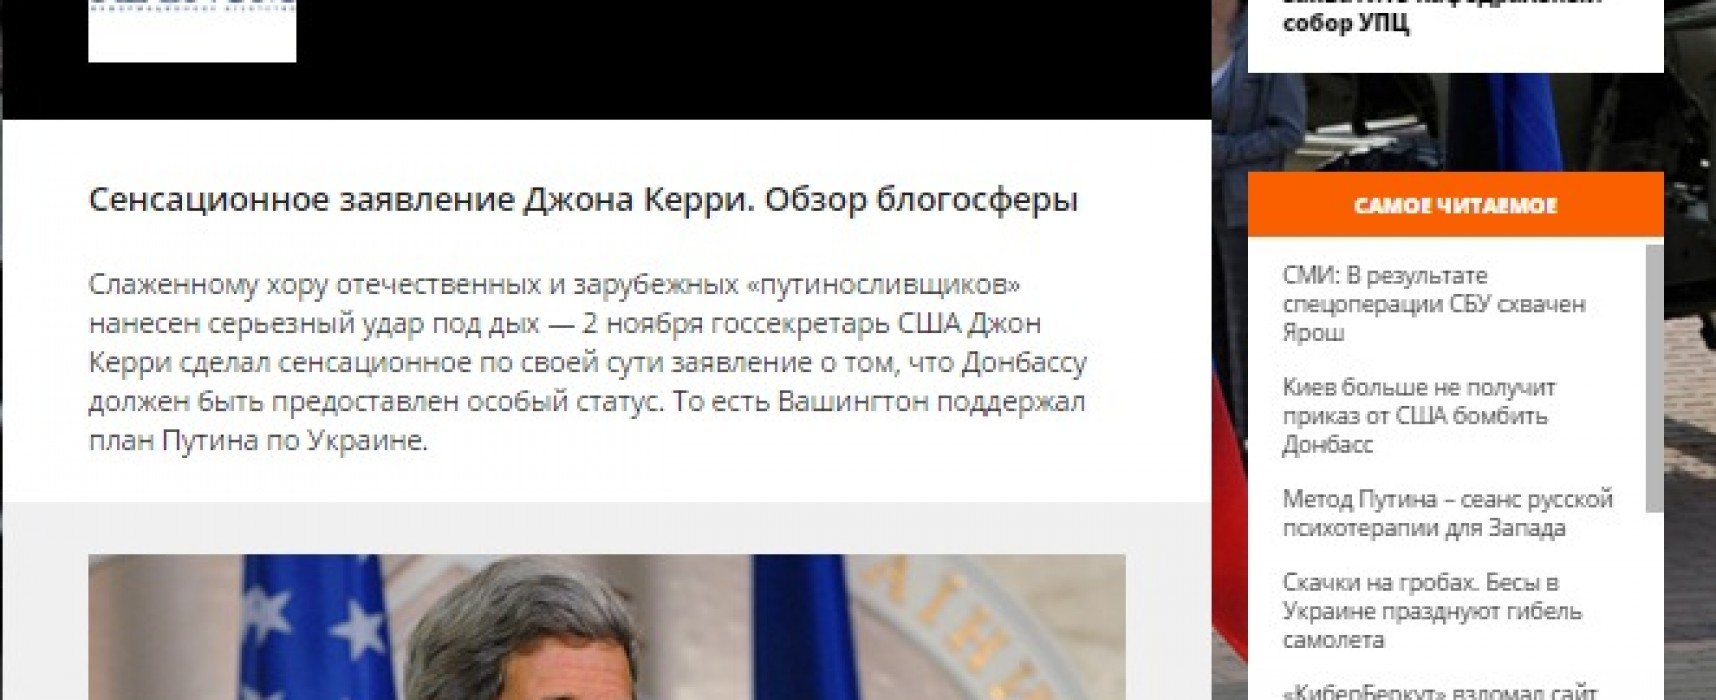 Media Distort Kerry's Comments on Donbas